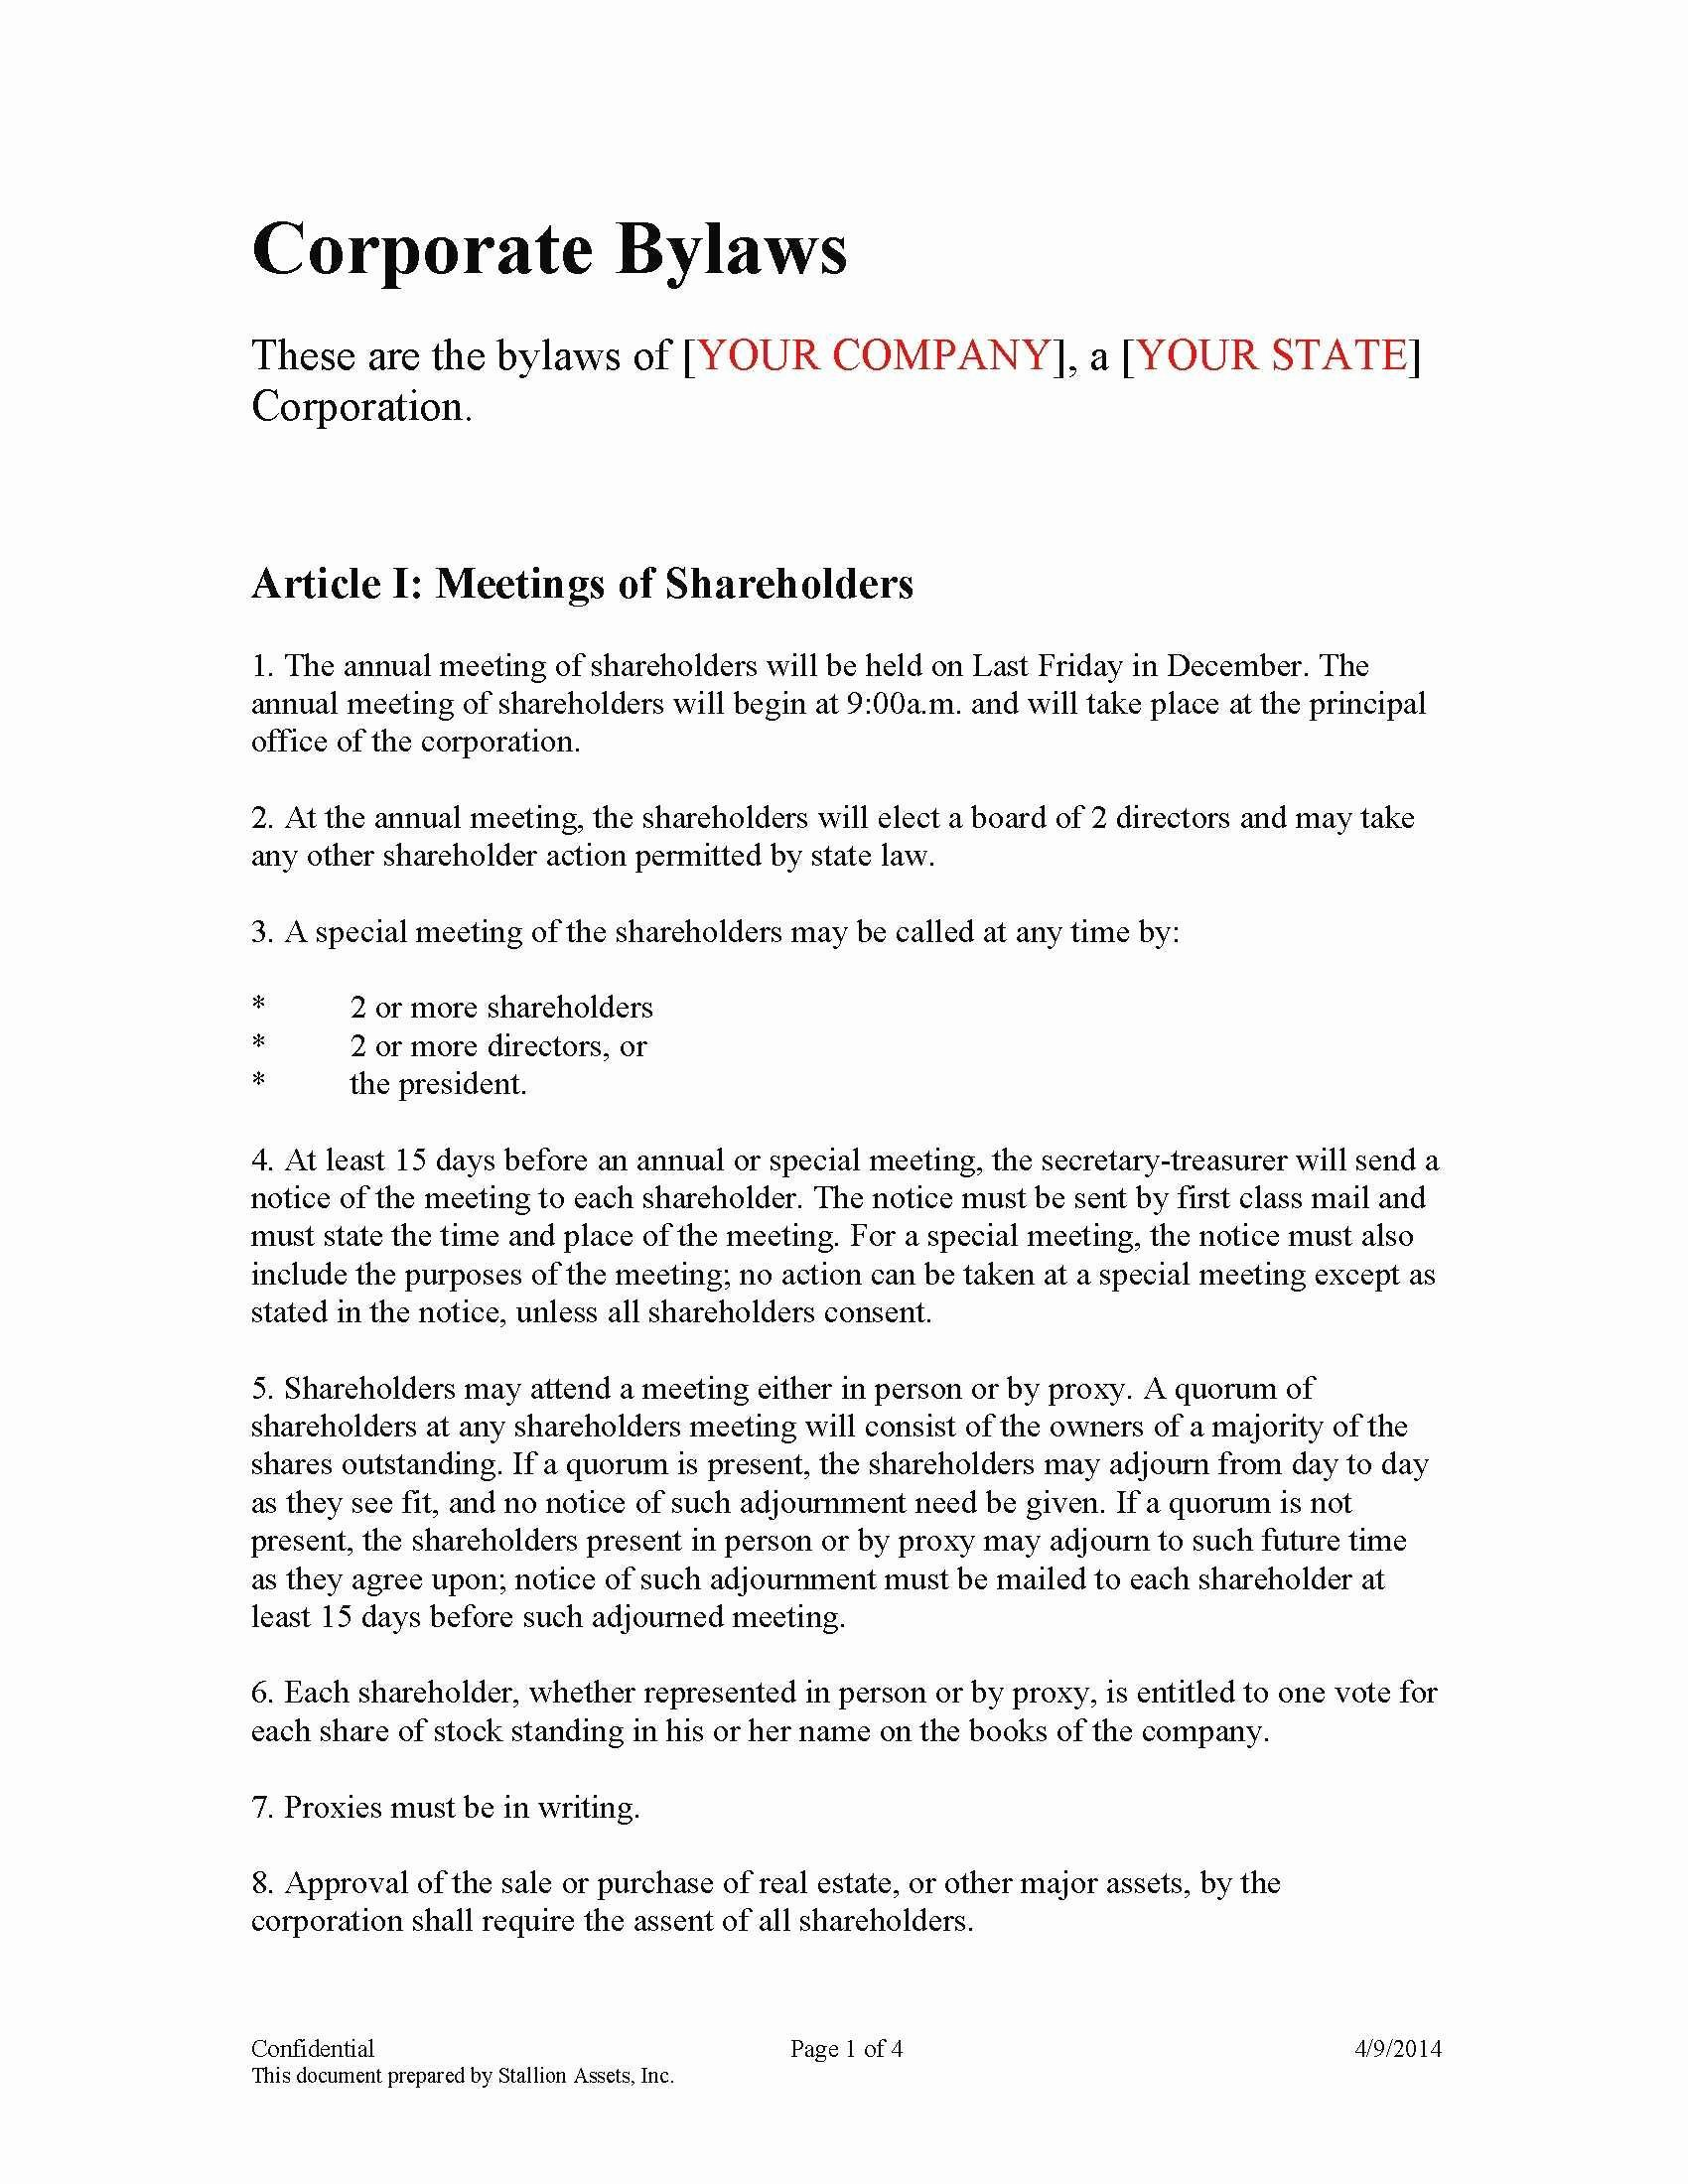 Corporate bylaws Template Pdf Beautiful Inspirational Corporate bylaws Sample Pdf